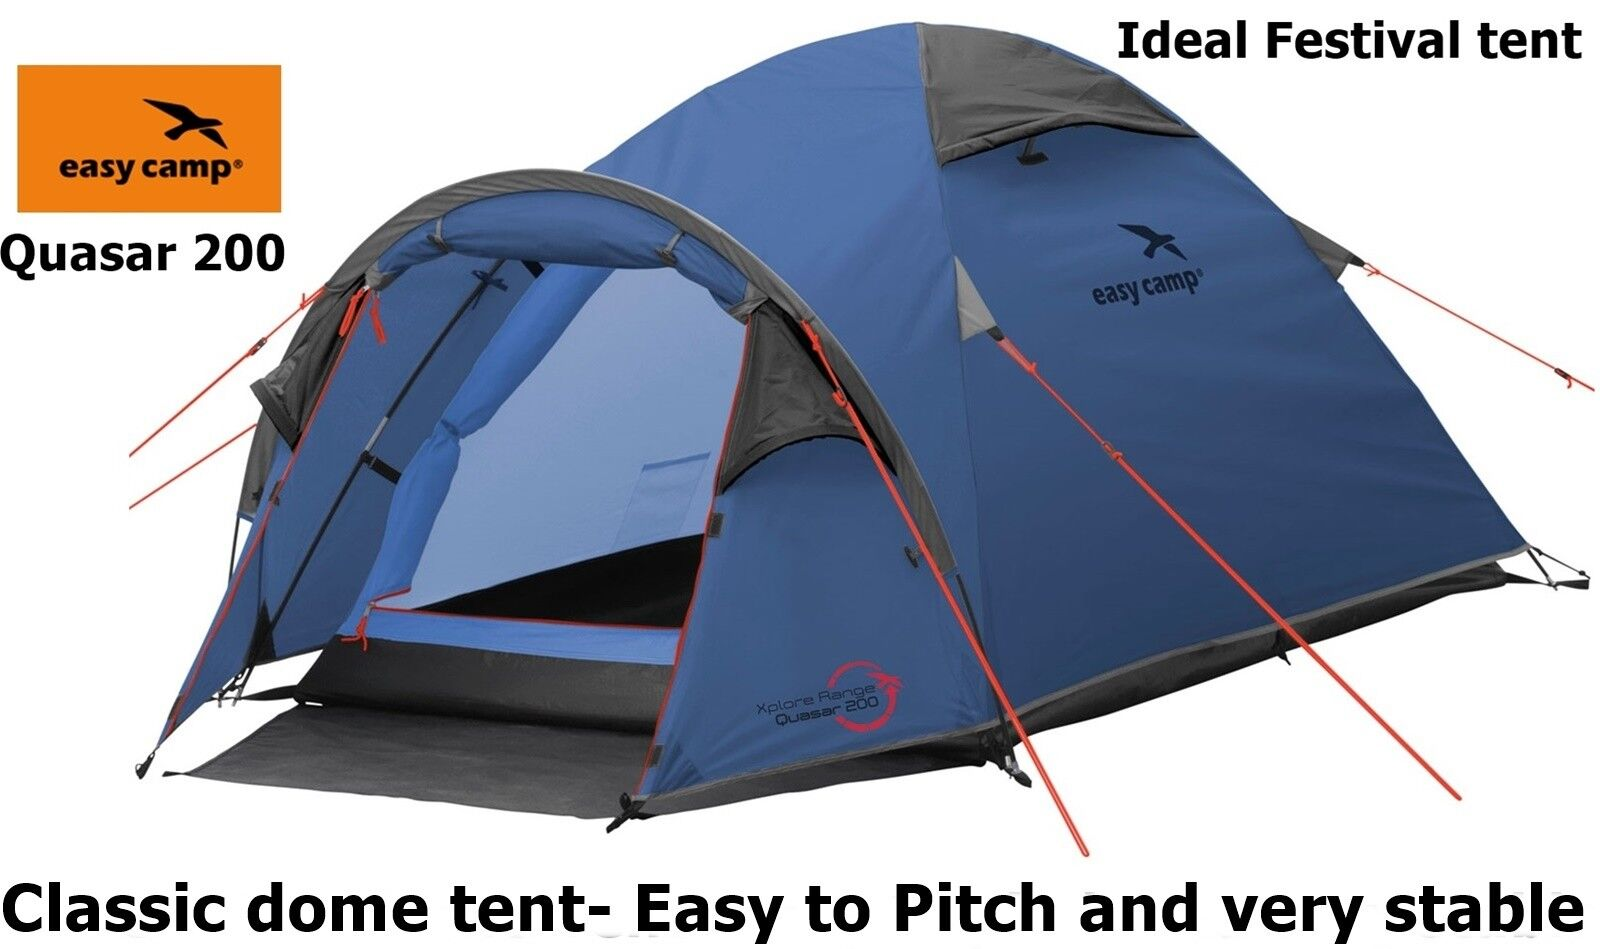 Easy Camp Quasar 200 2 Person Tent Ideal Festival Camping